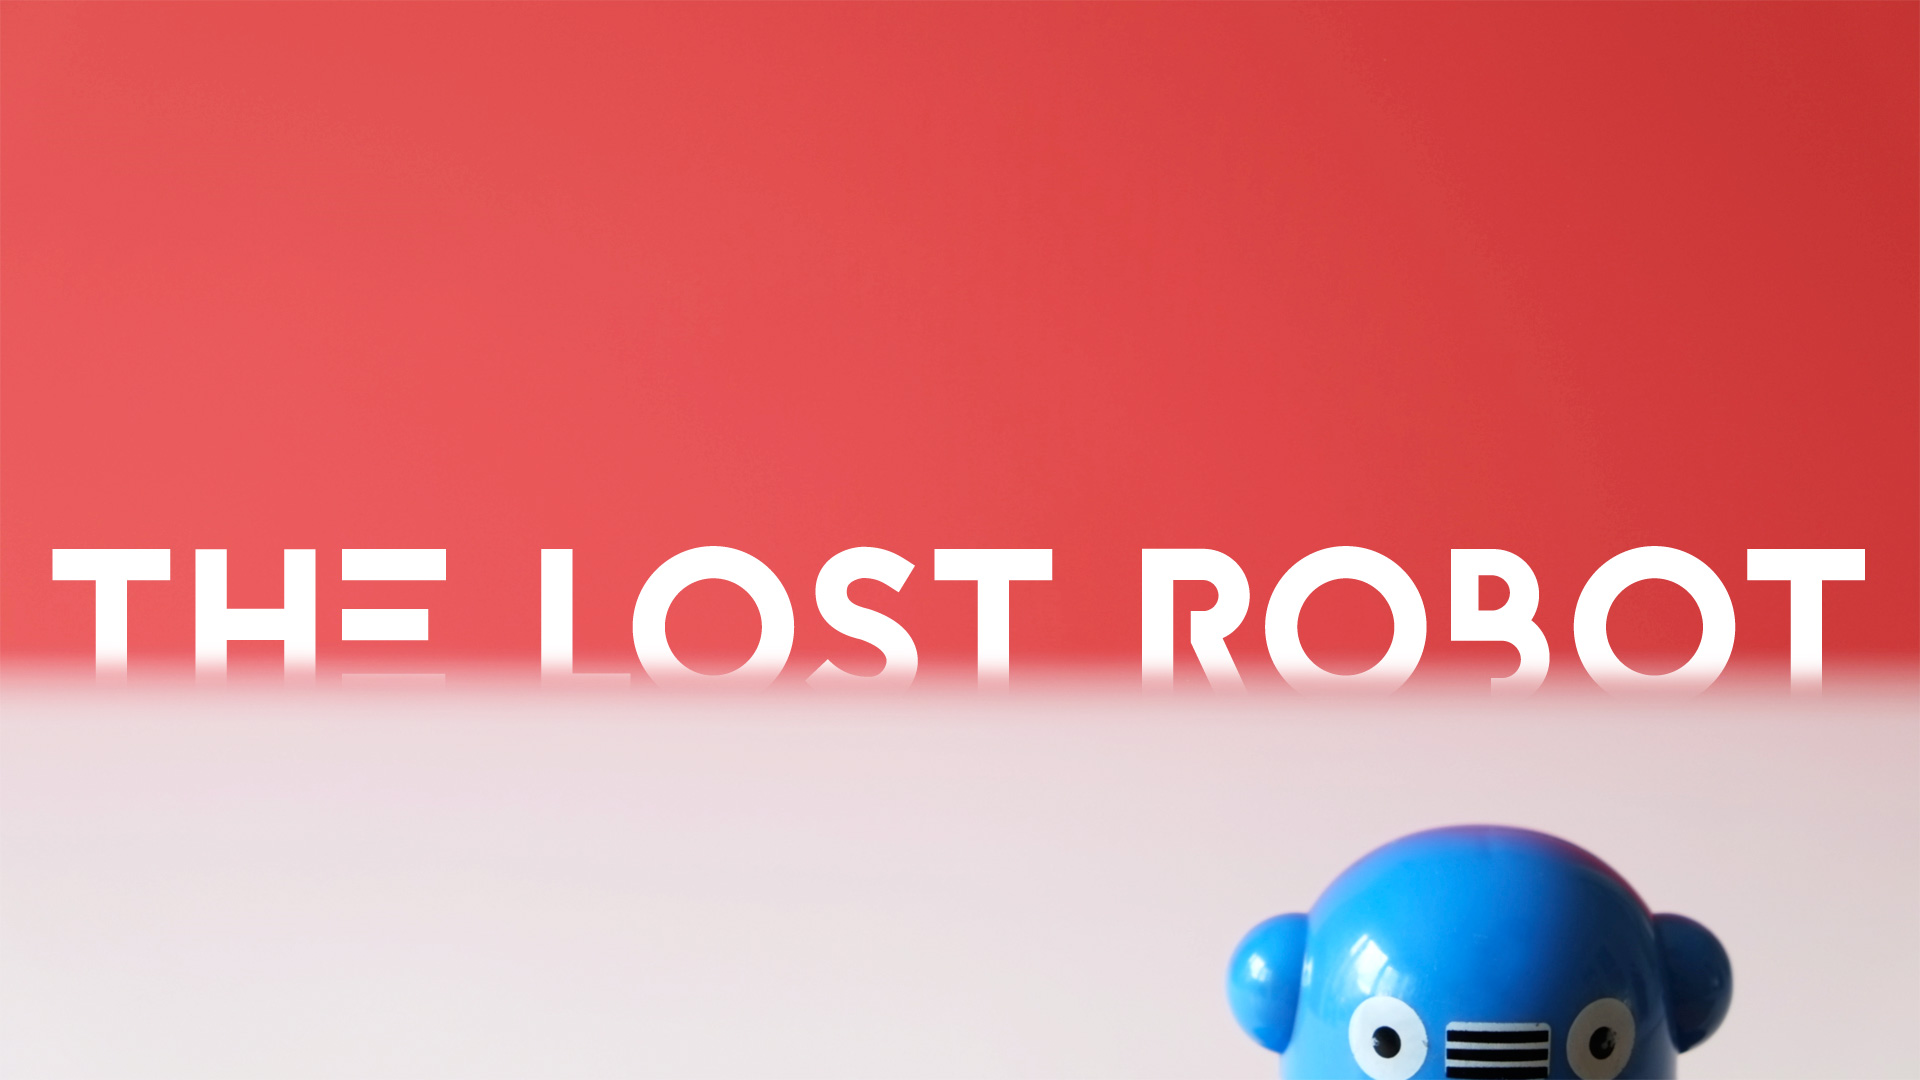 The Lost Robot - A Story About Hope